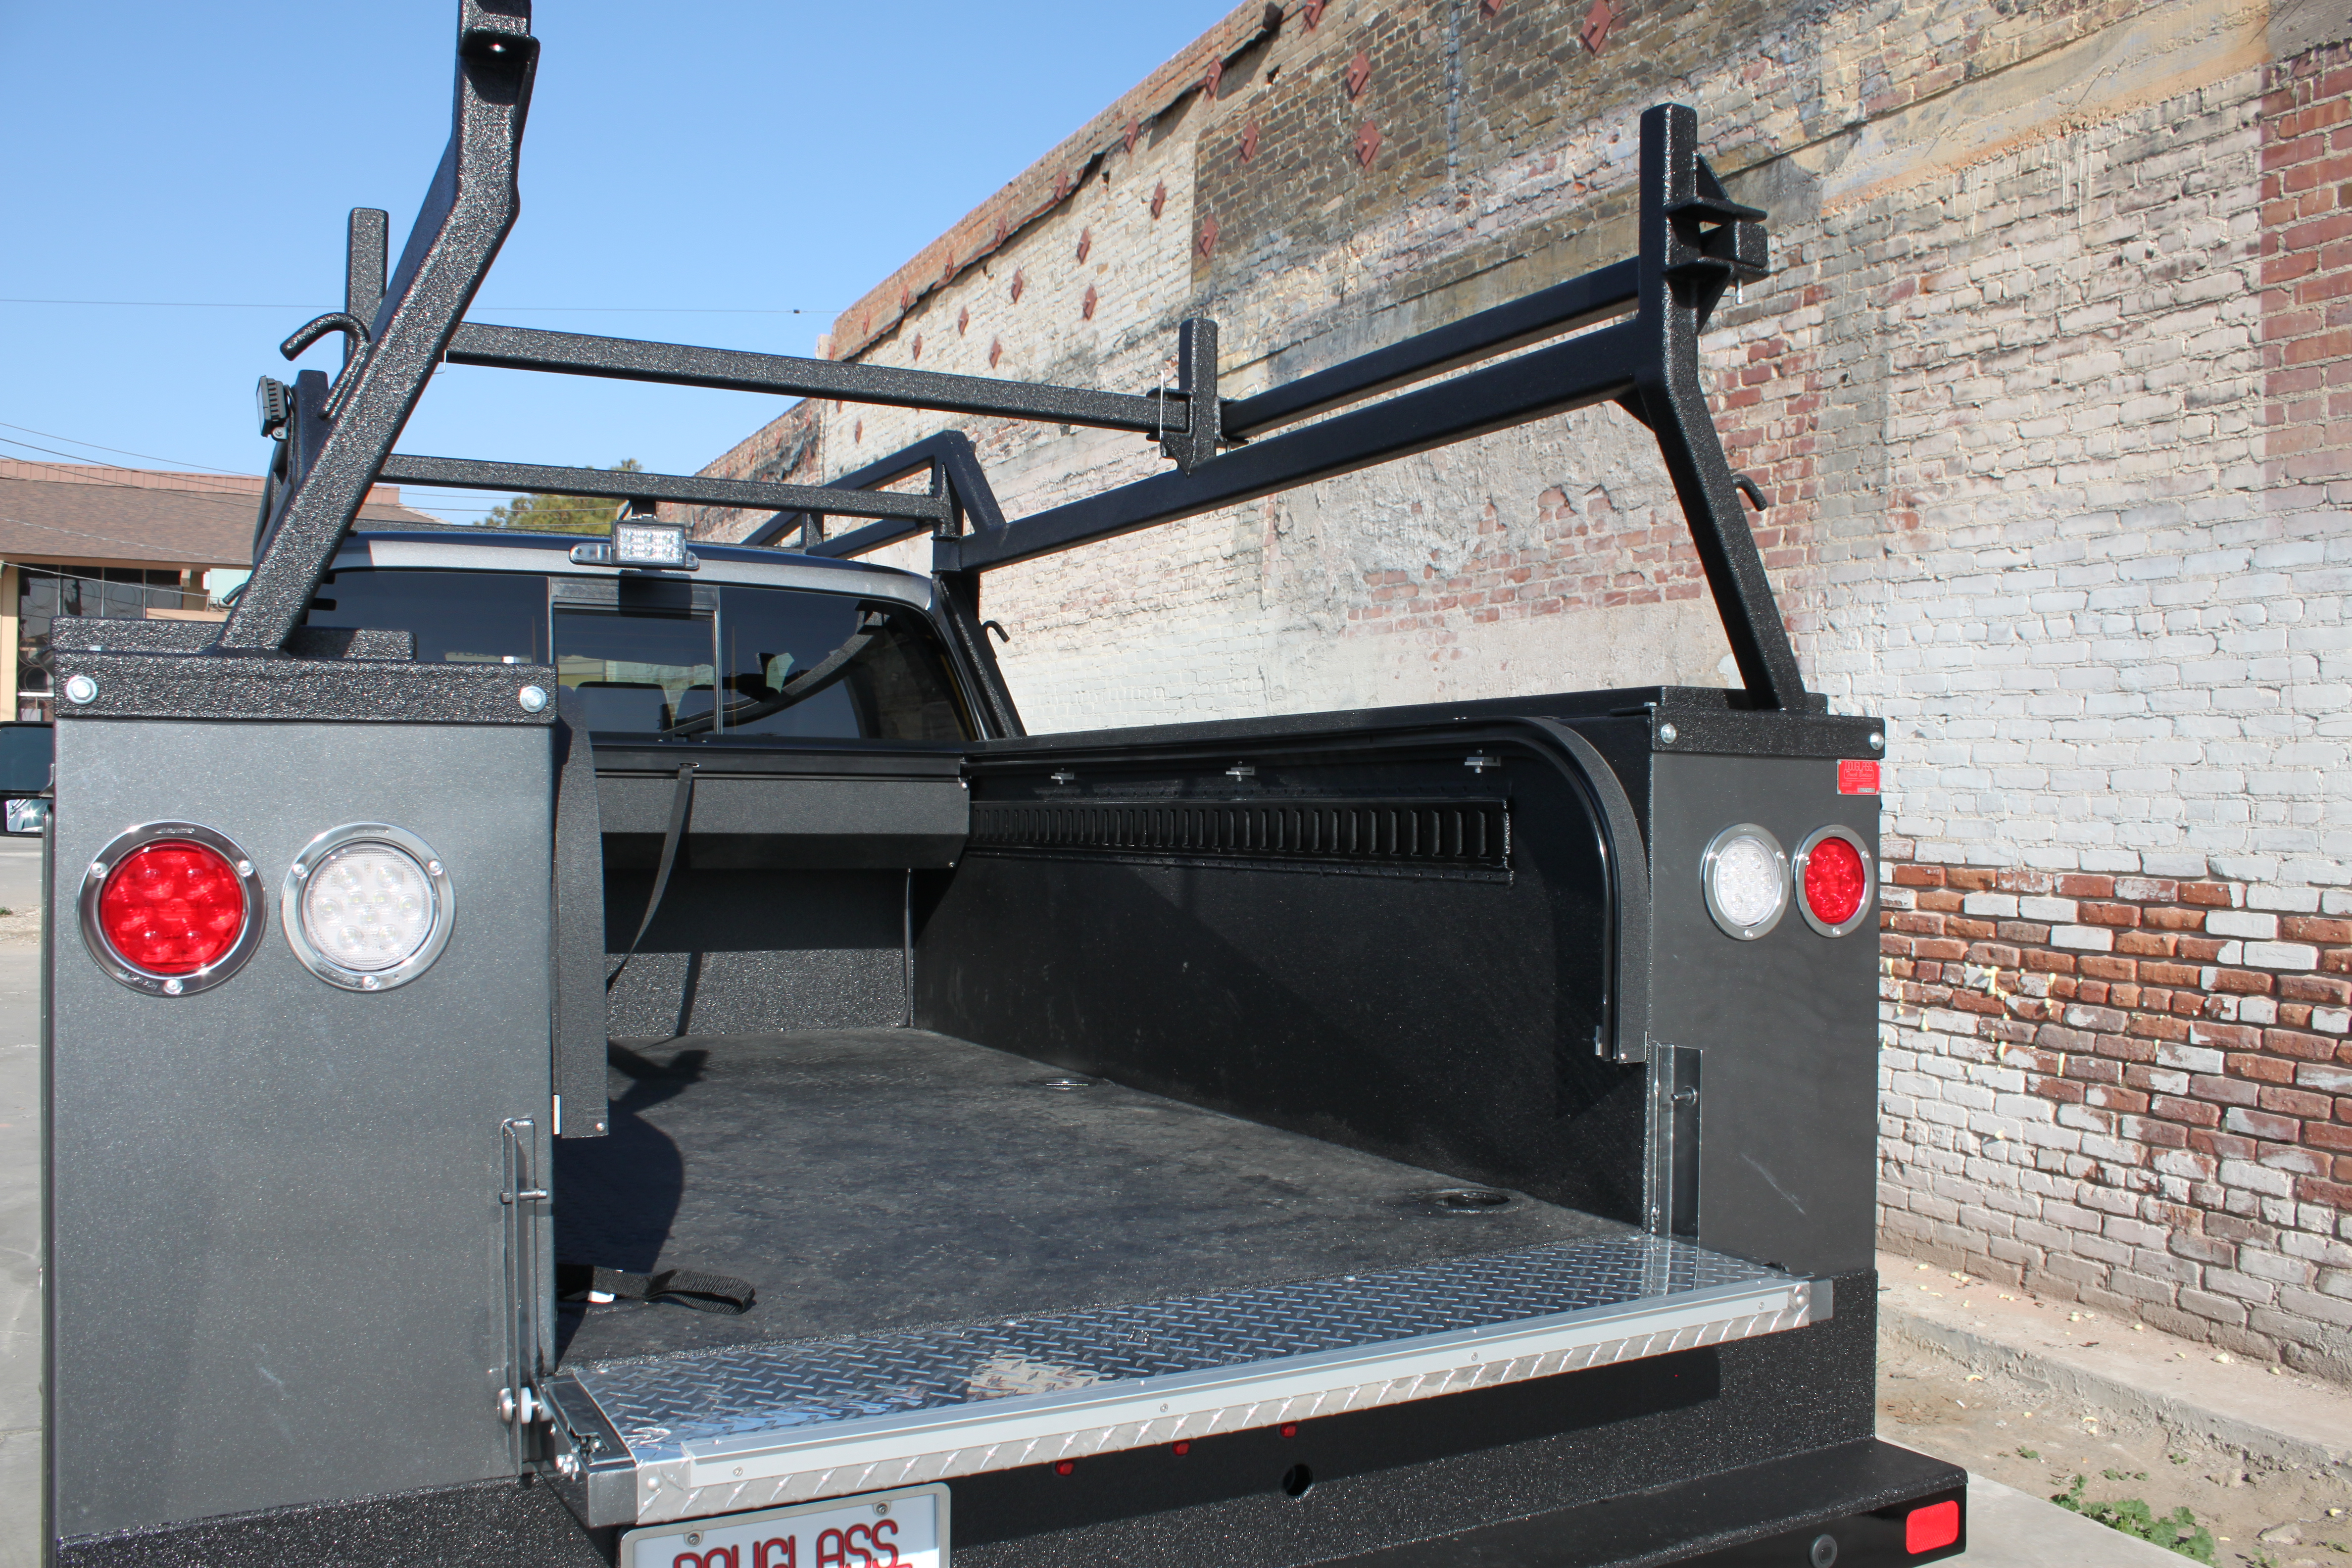 ladder cover van tonneau gamma crop kit by compat new cap hauler item truck correct rack inc racks